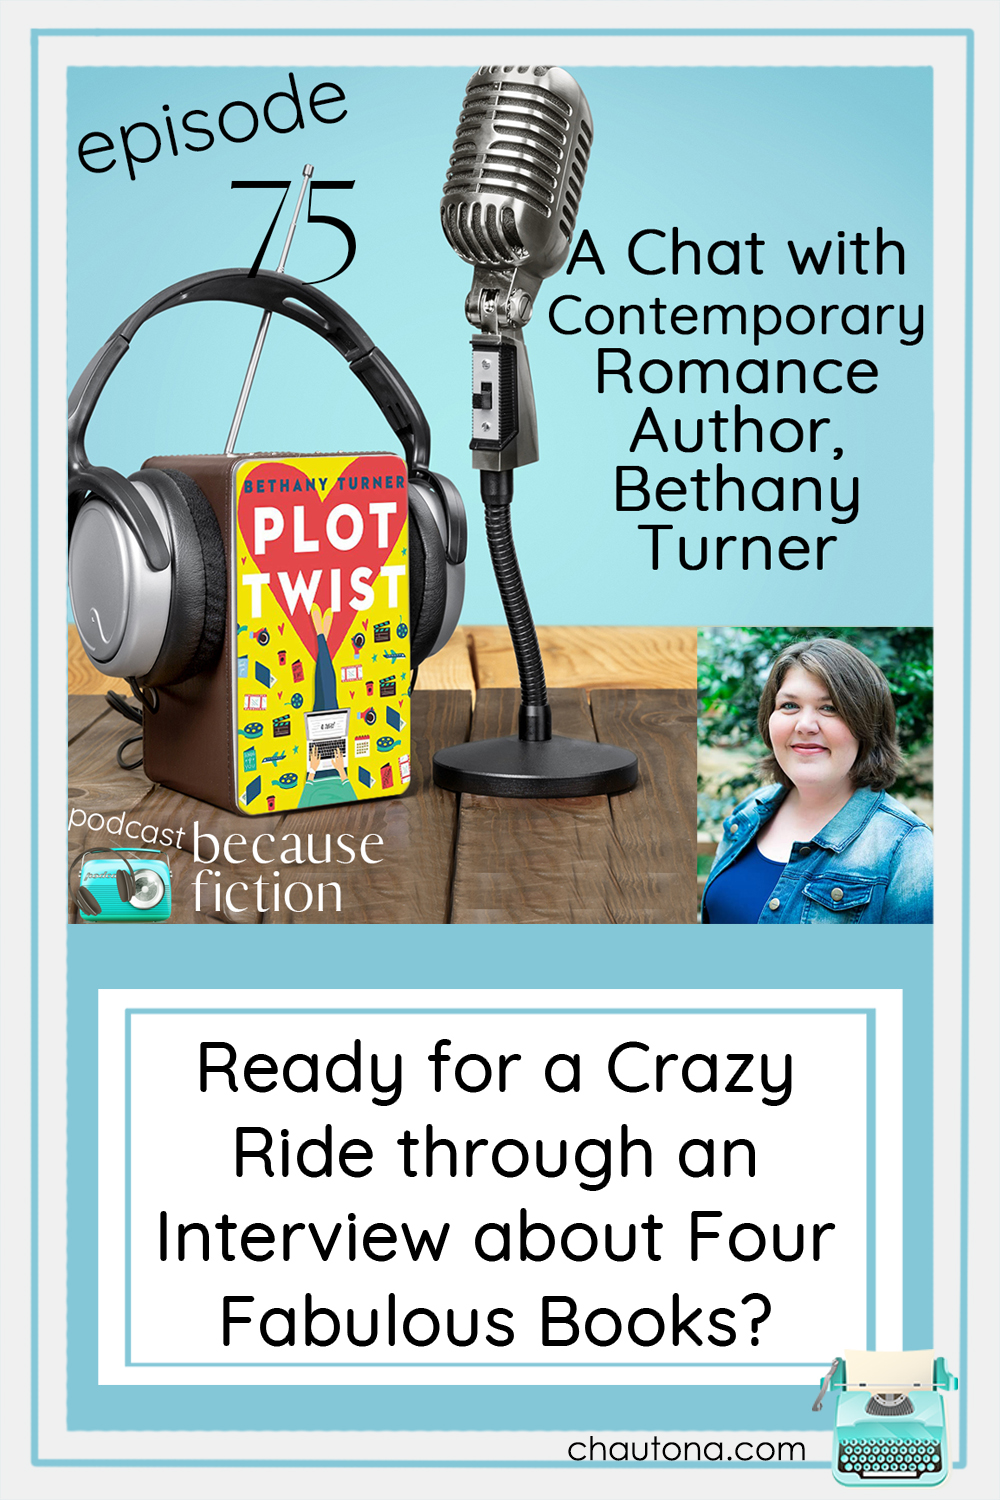 Charming and too funny for words, Bethany Turner writes rom-com you can't put down and with depth beneath it that reflects the author! via @chautonahavig